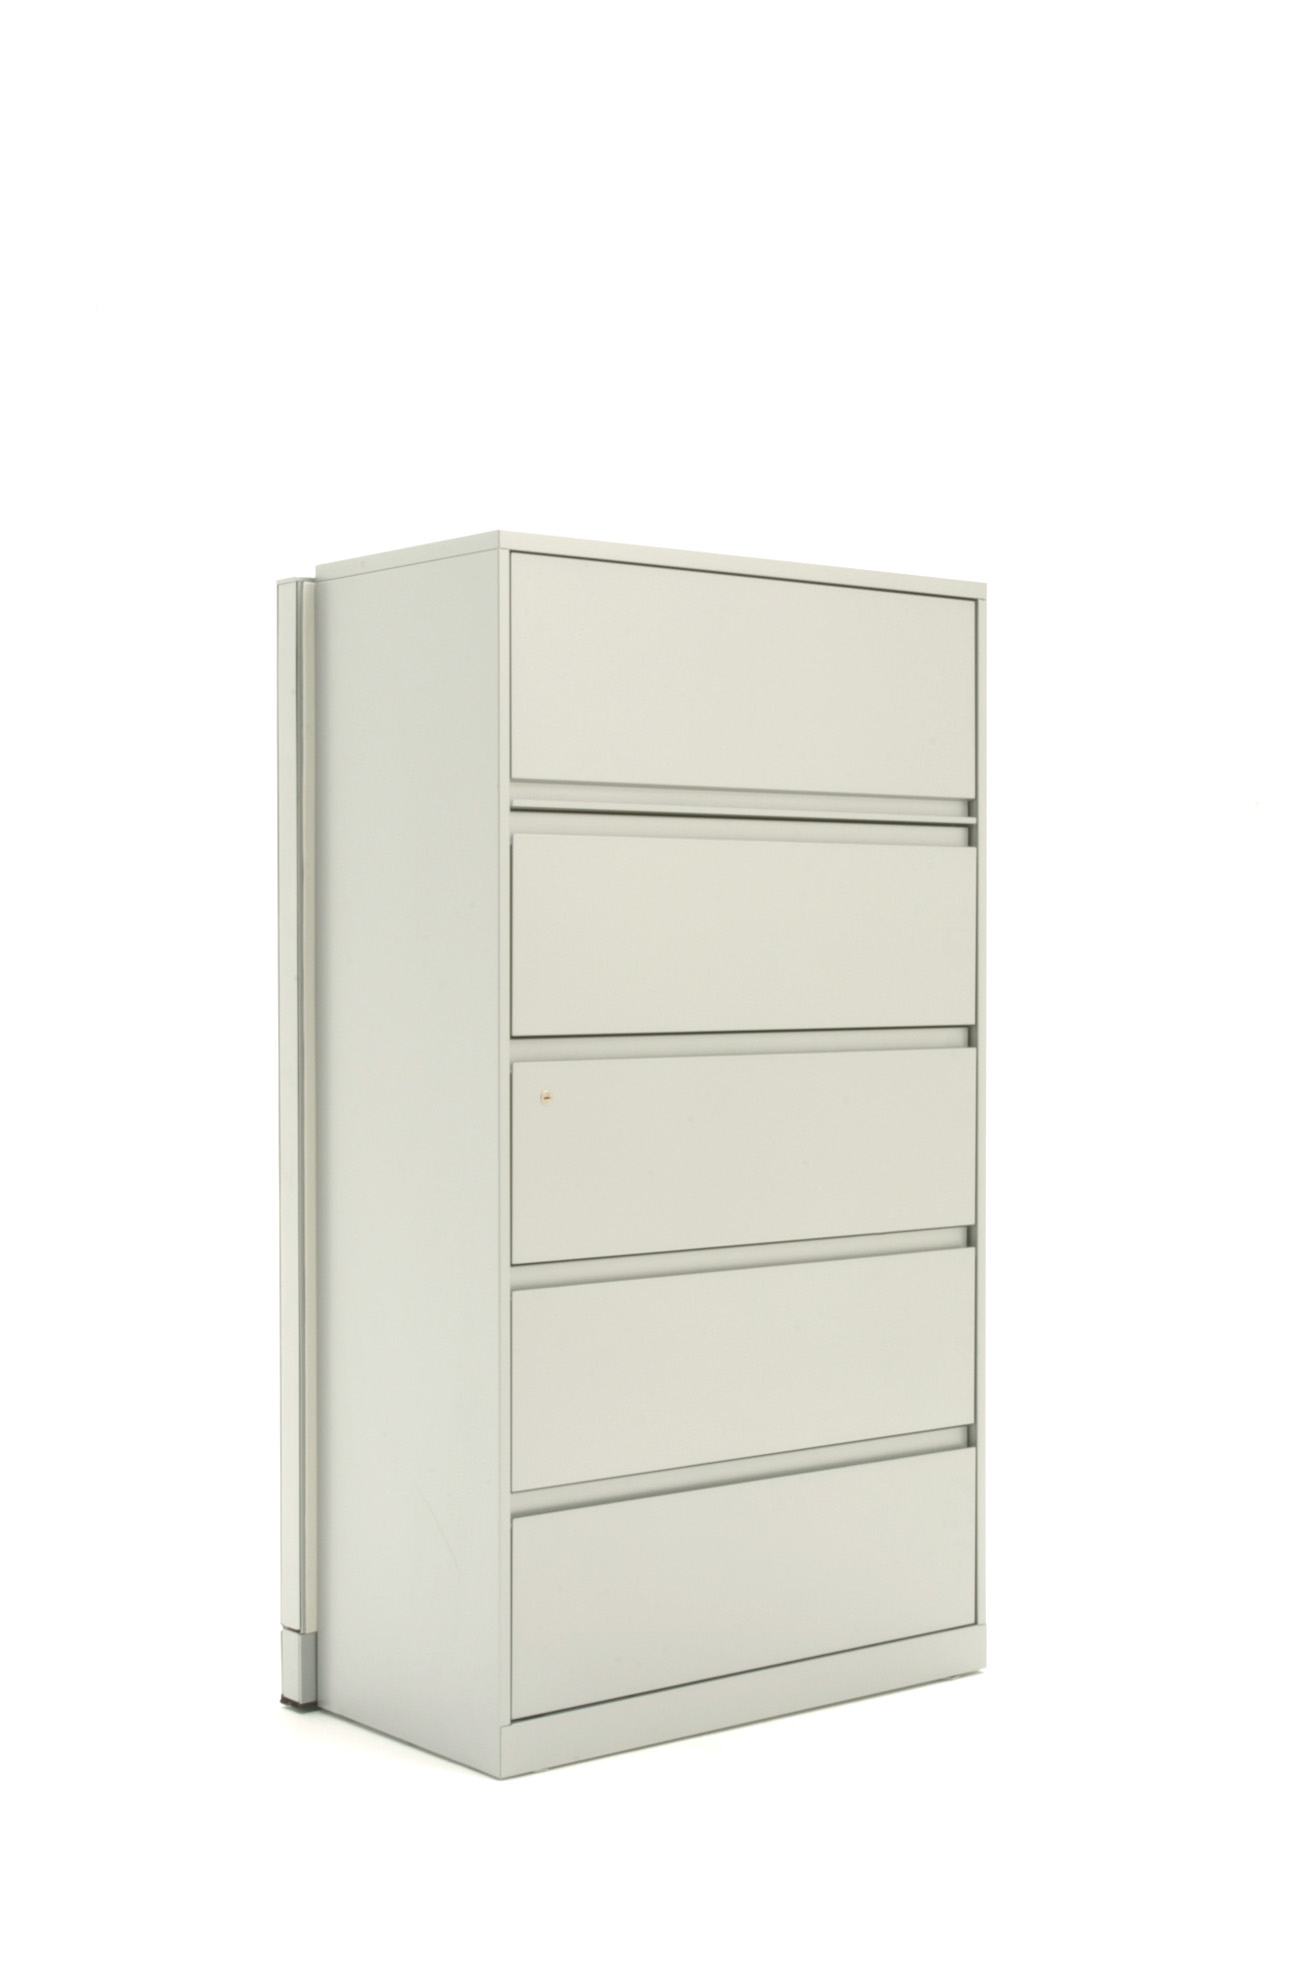 900 Series Lateral File